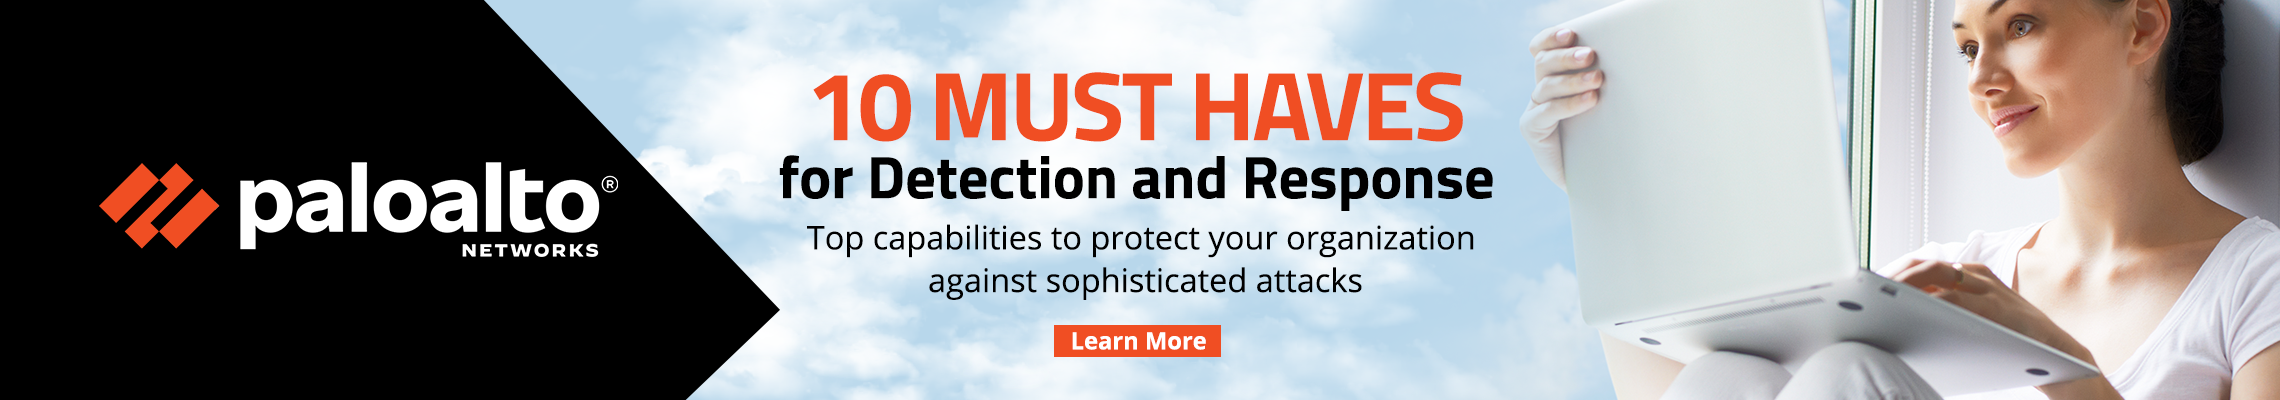 10 Must haves for Detection and Response Banner